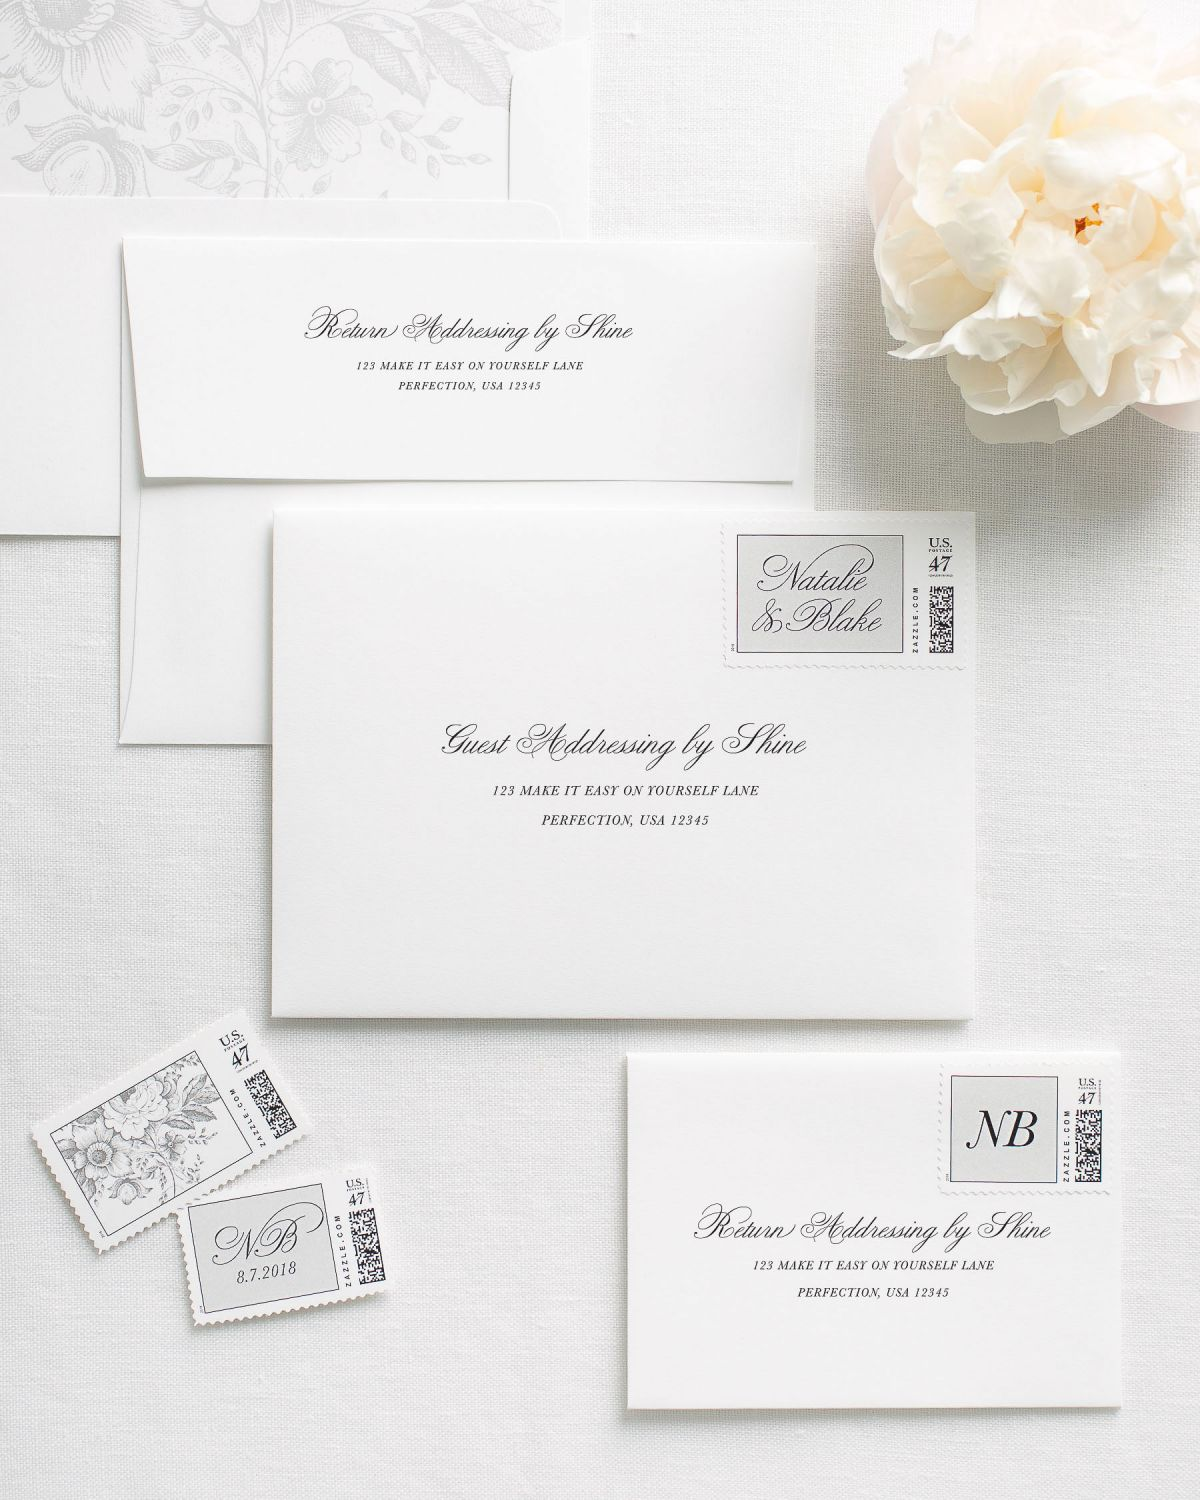 Addressed Envelopes for Wedding Invitations